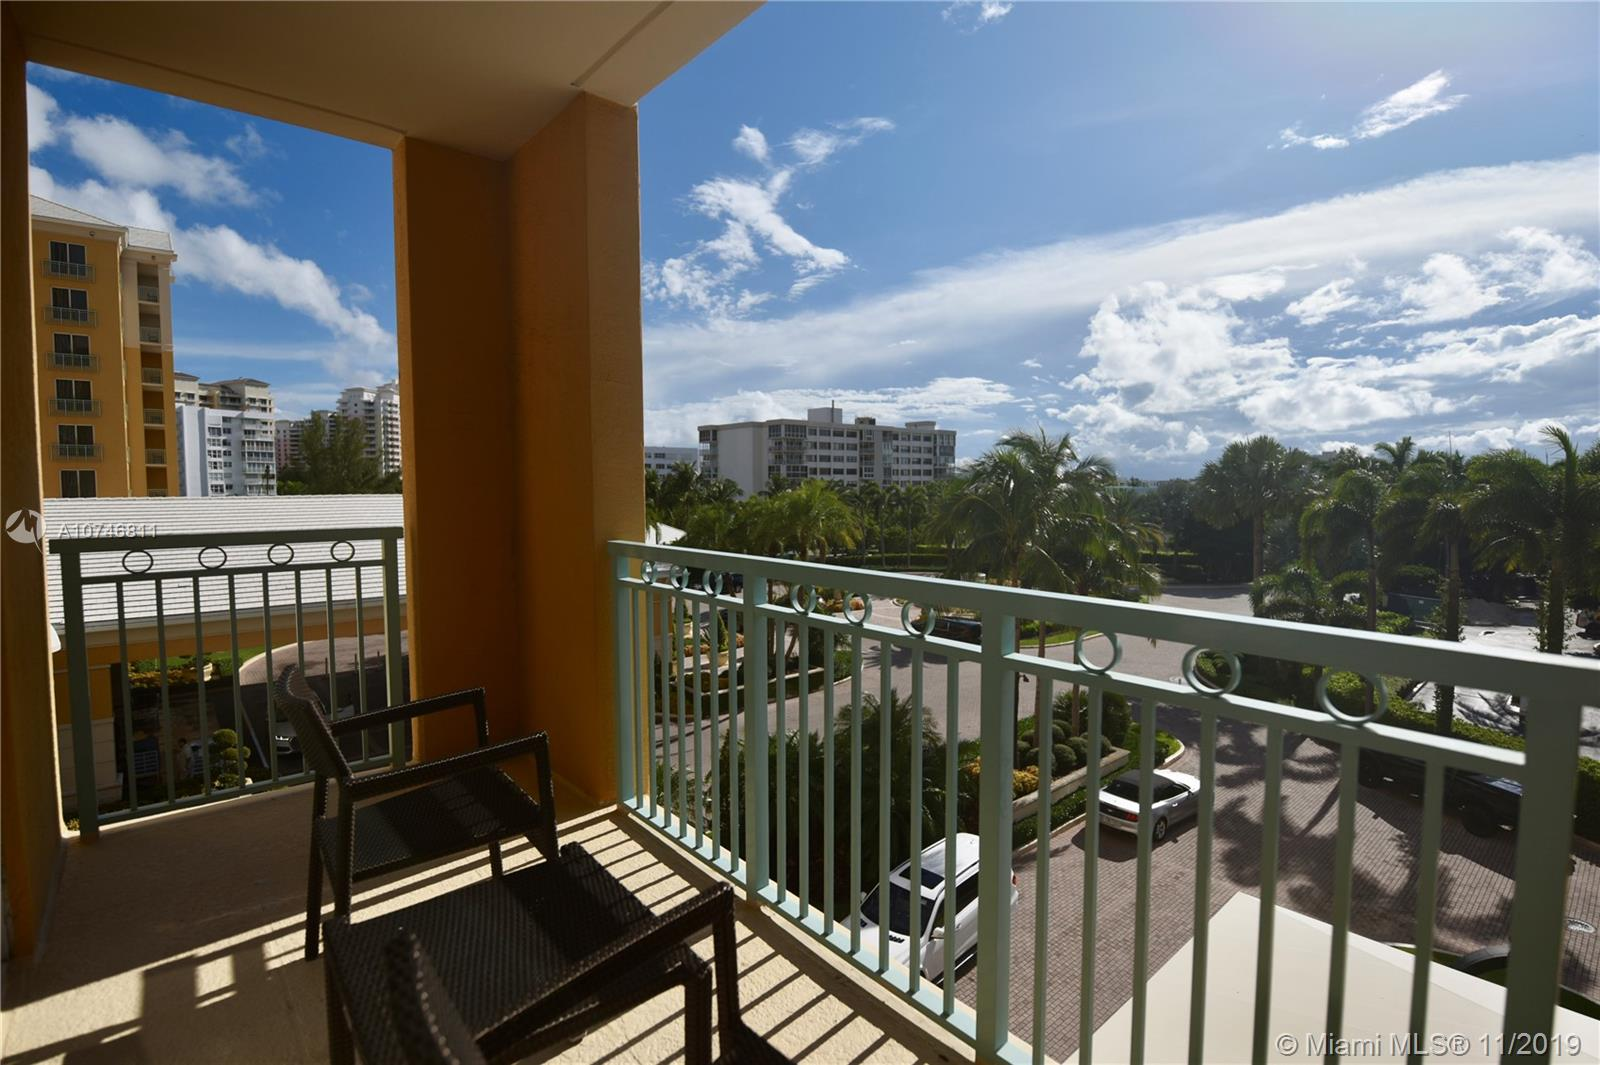 """Renovated studio at The Ritz-Carlton in Key Biscayne.  The building has had a multi-million dollar renovation, offering new state of the art restaurant with views to the ocean, along with (2) beach side restaurants and an in house café. Hotel amenities include concierge service, valet, gym, tennis, spa, beach service and more. Enjoy all of the amenities of the Ritz-Carlton hotel while you have the hotel manage your unit when you are away. Call listing agent for easy showing instructions."""""""